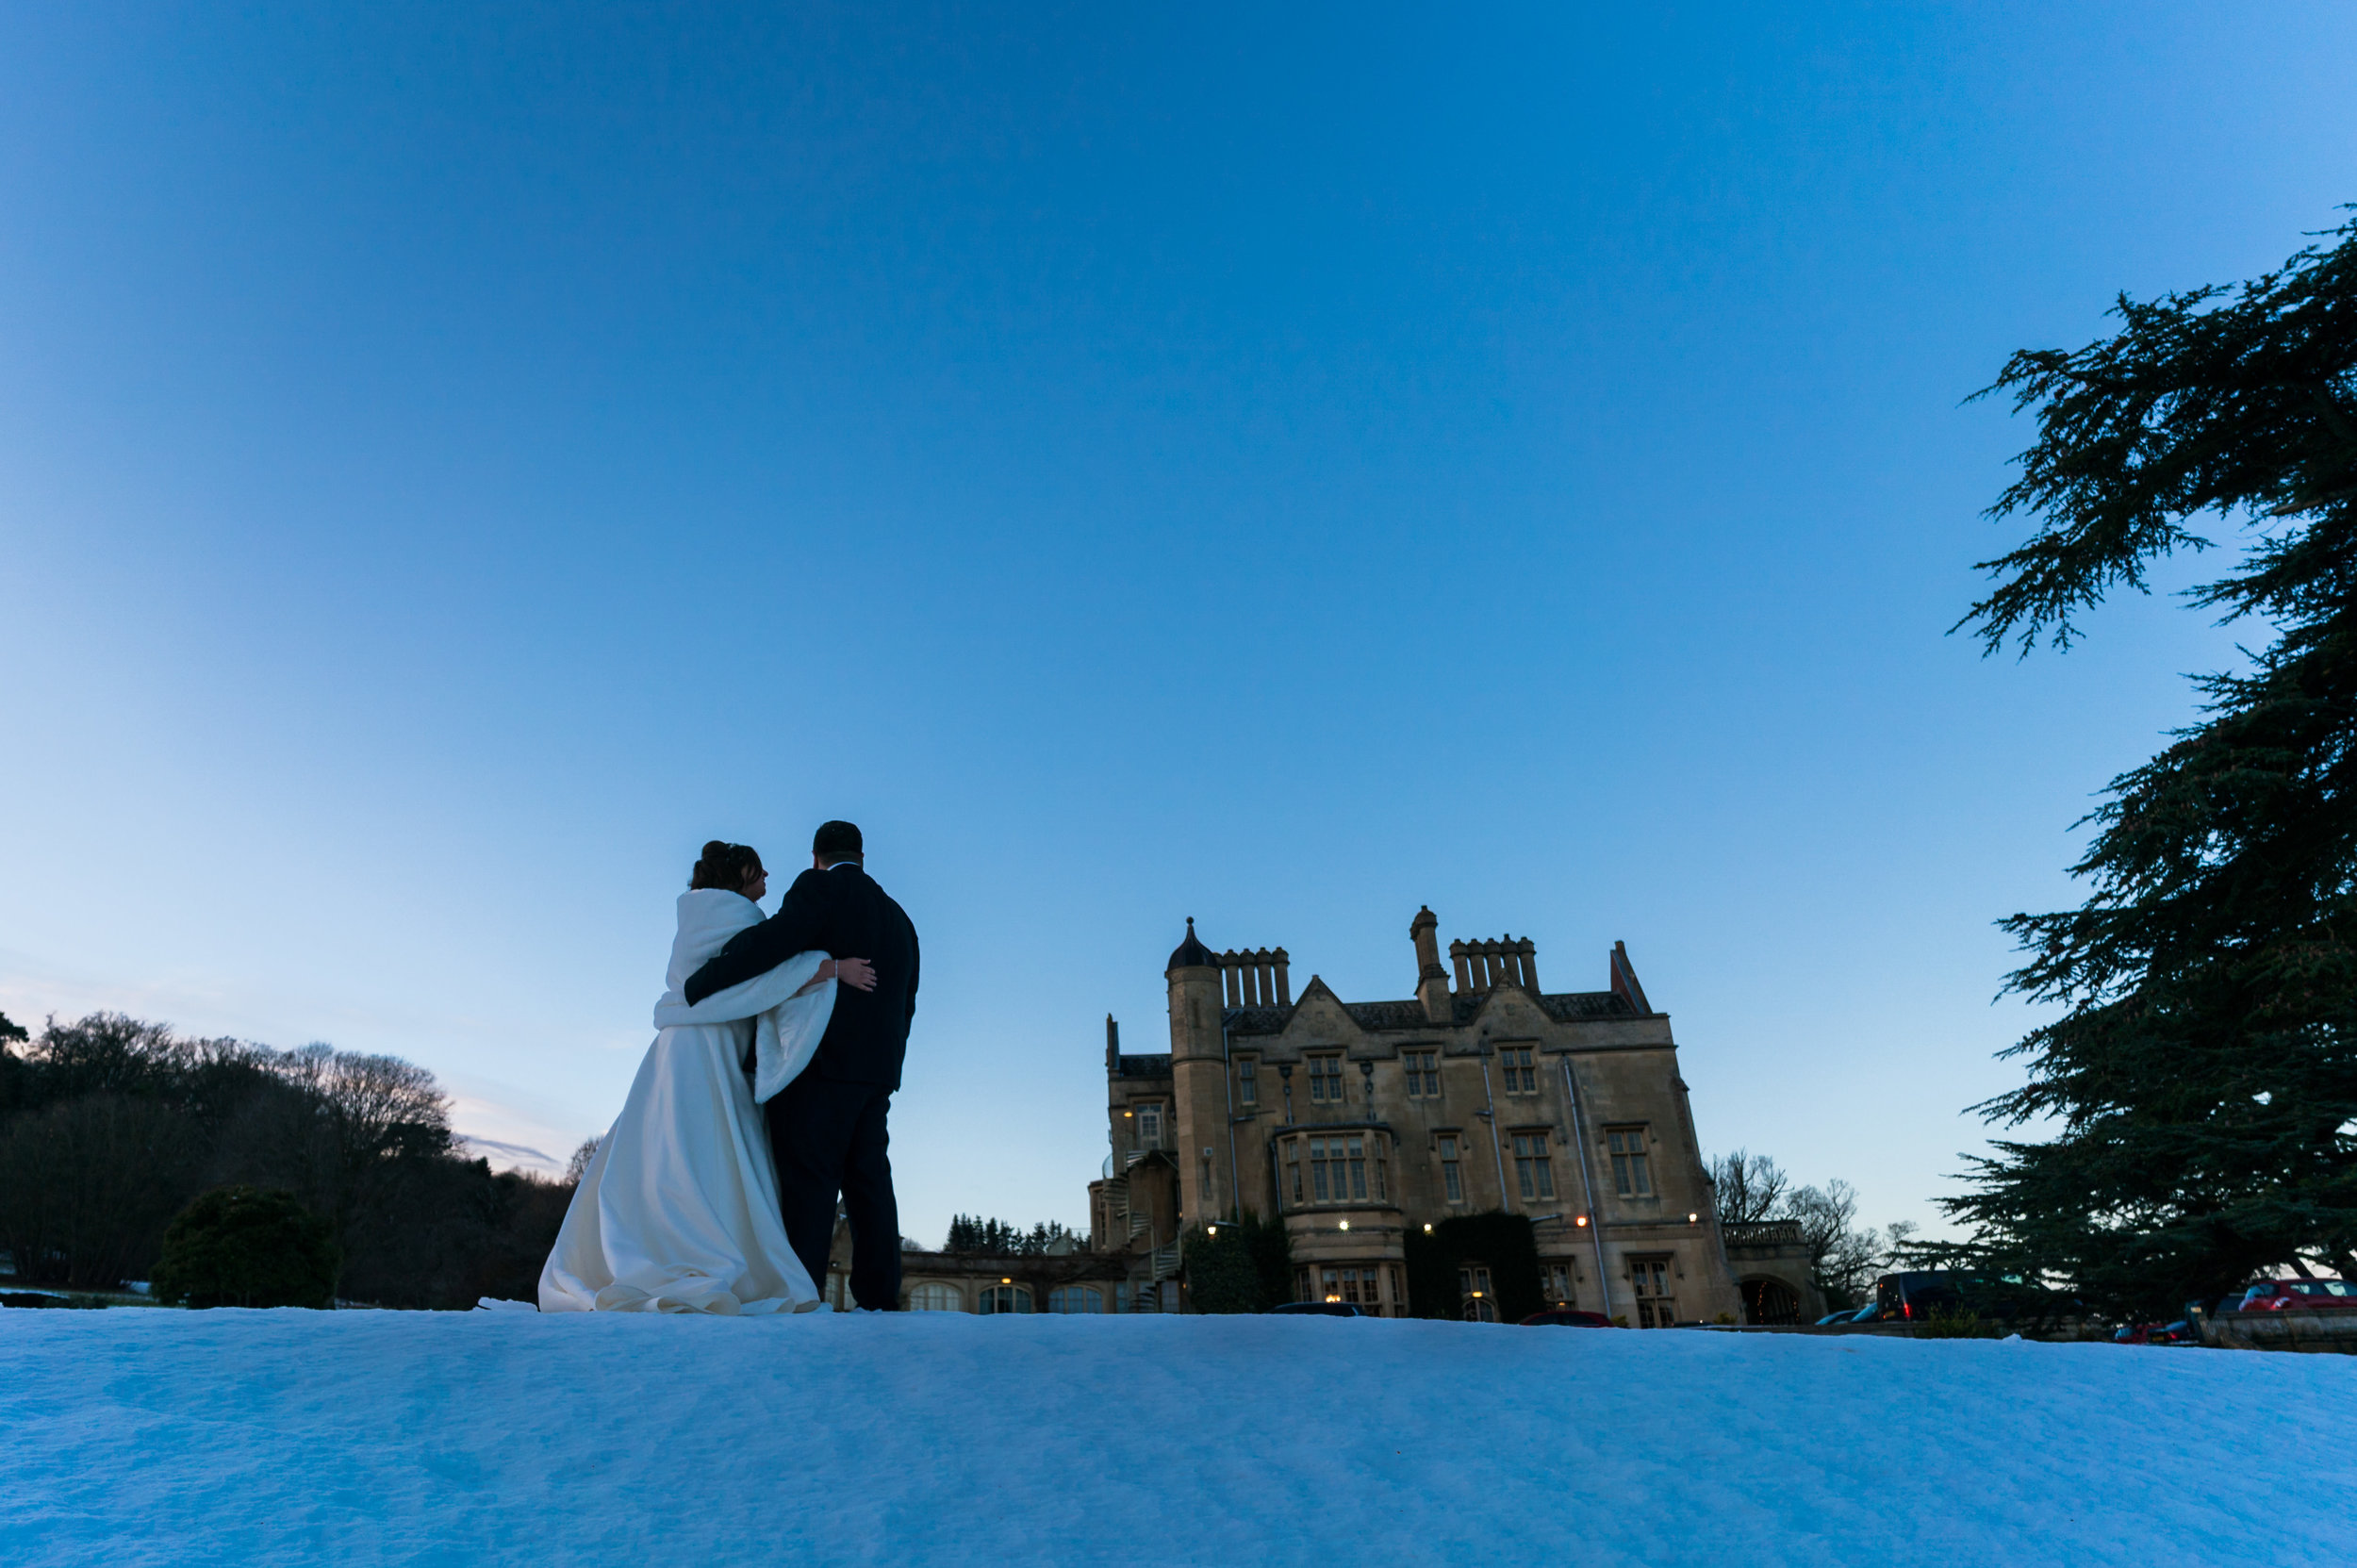 Dumbleton Hall in the snow and the happy couple link arms